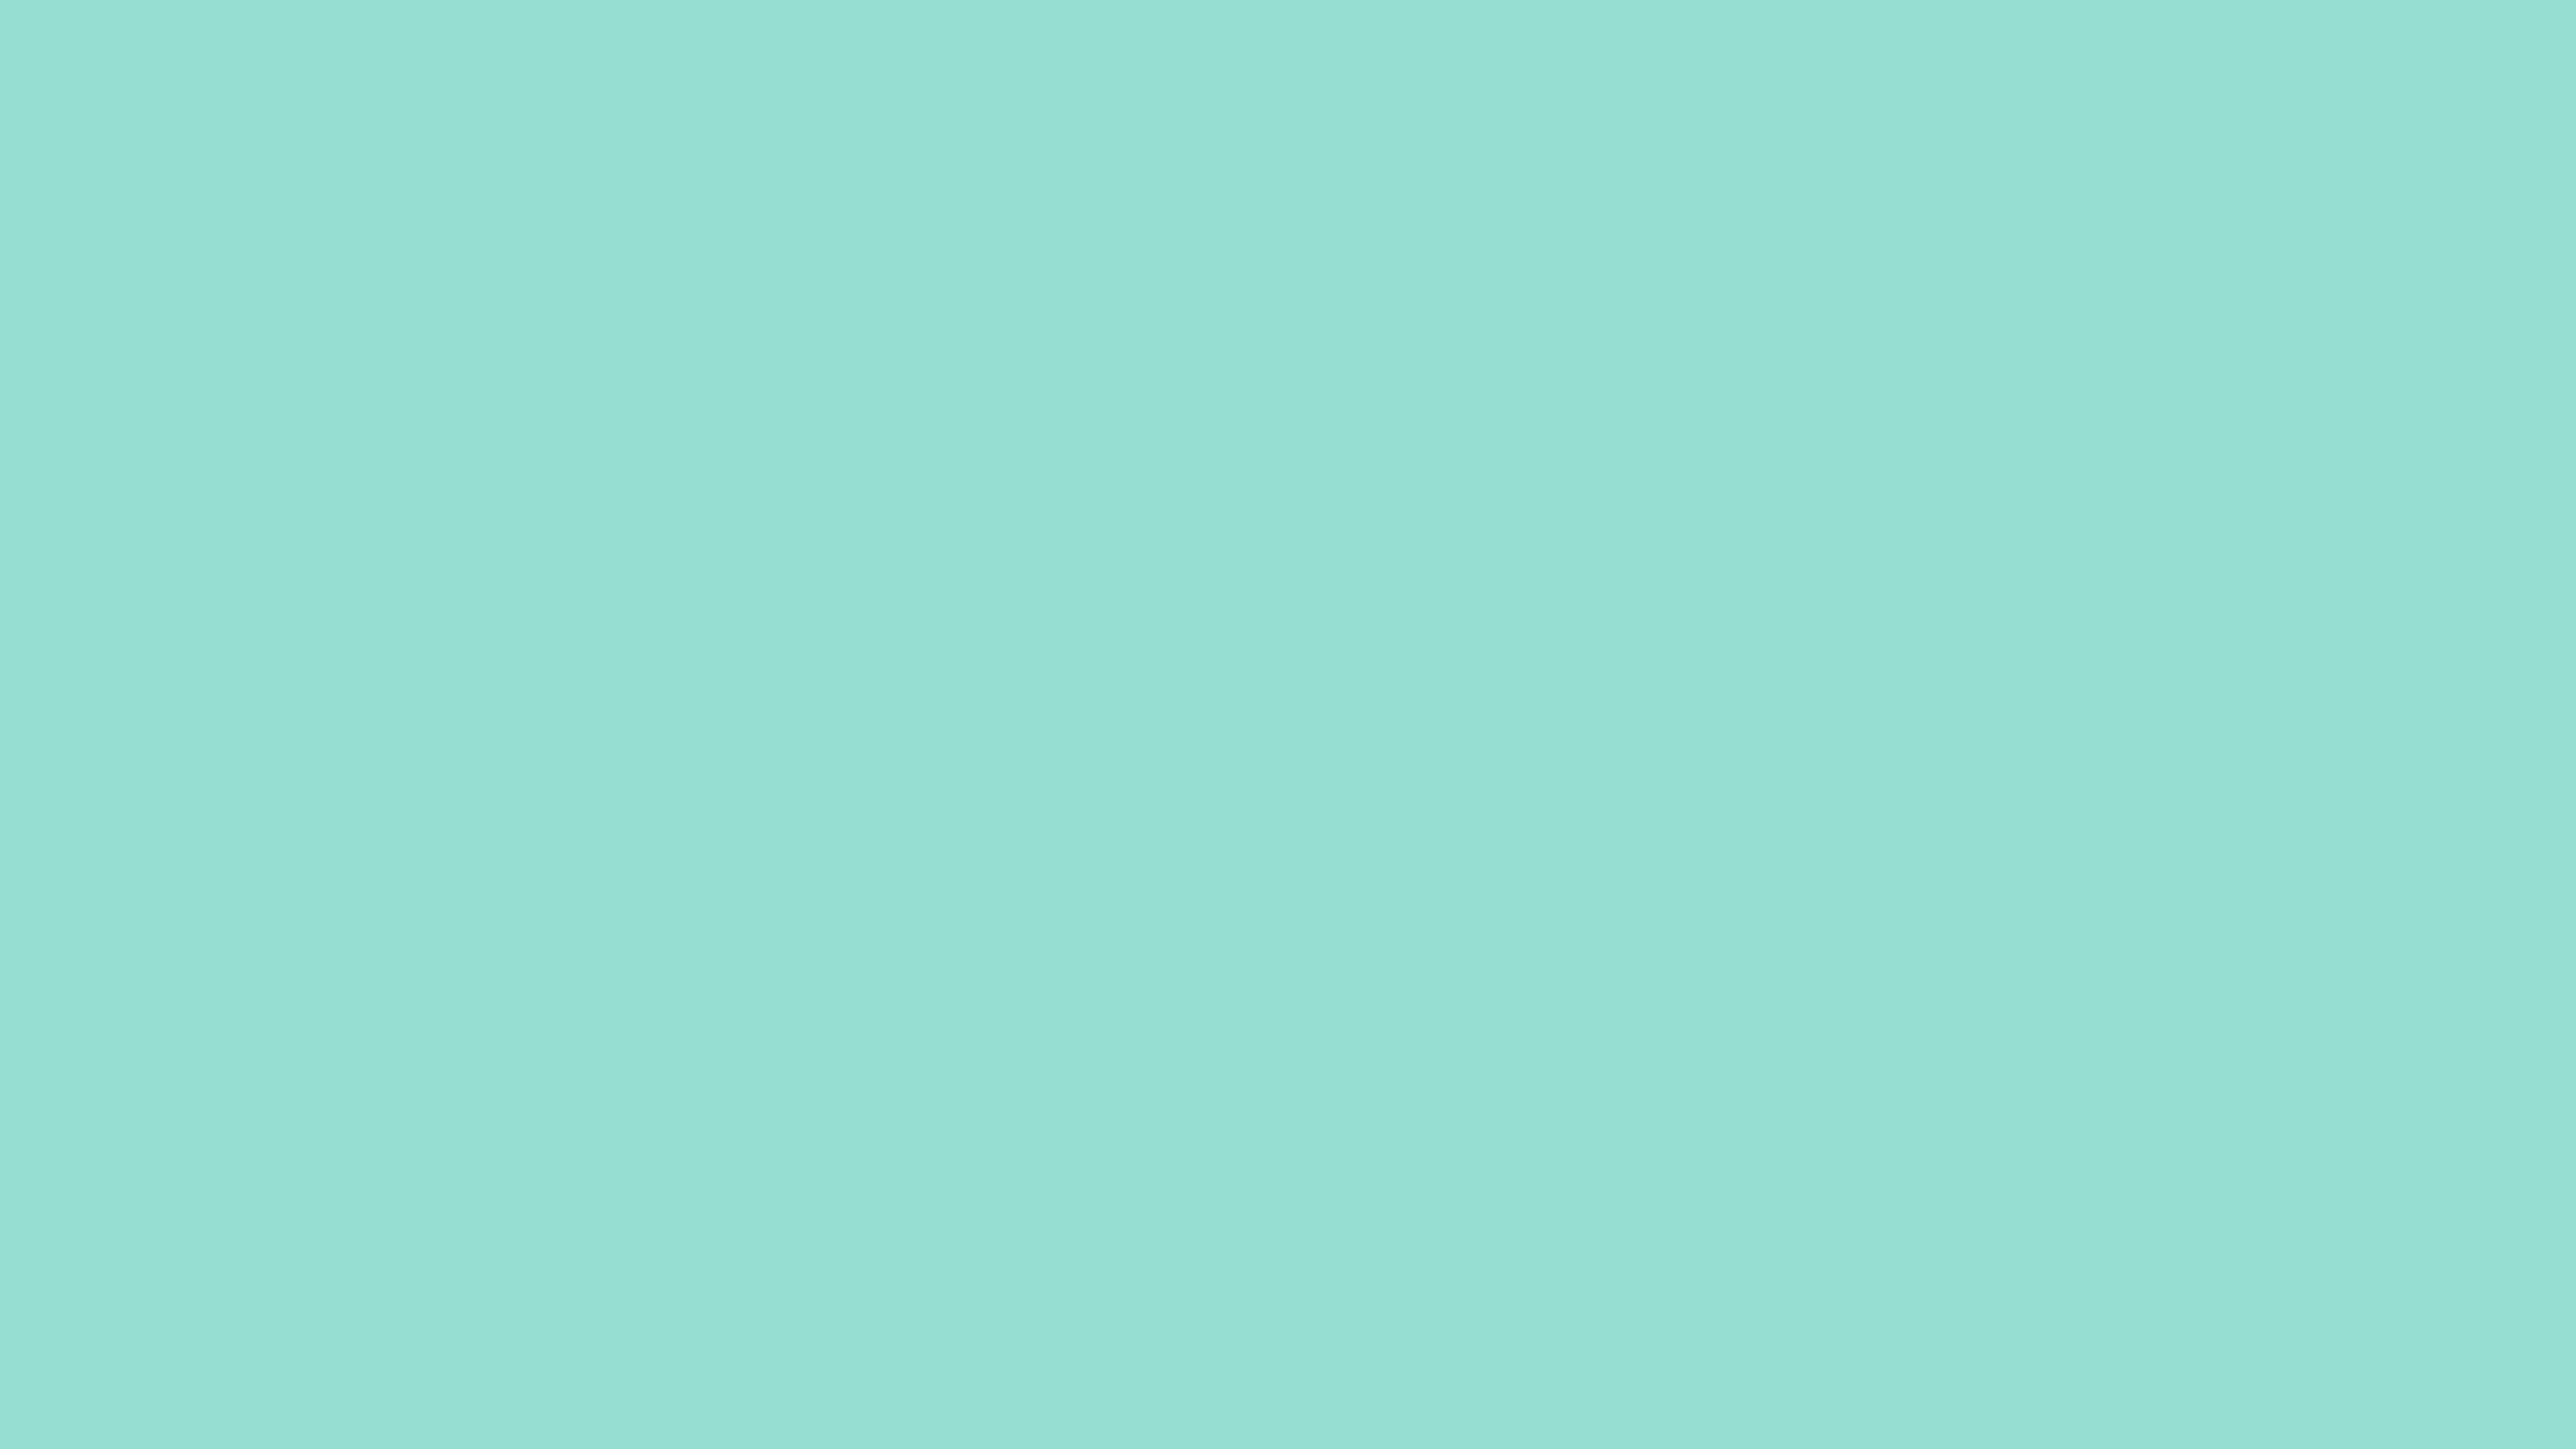 4096x2304 Pale Robin Egg Blue Solid Color Background